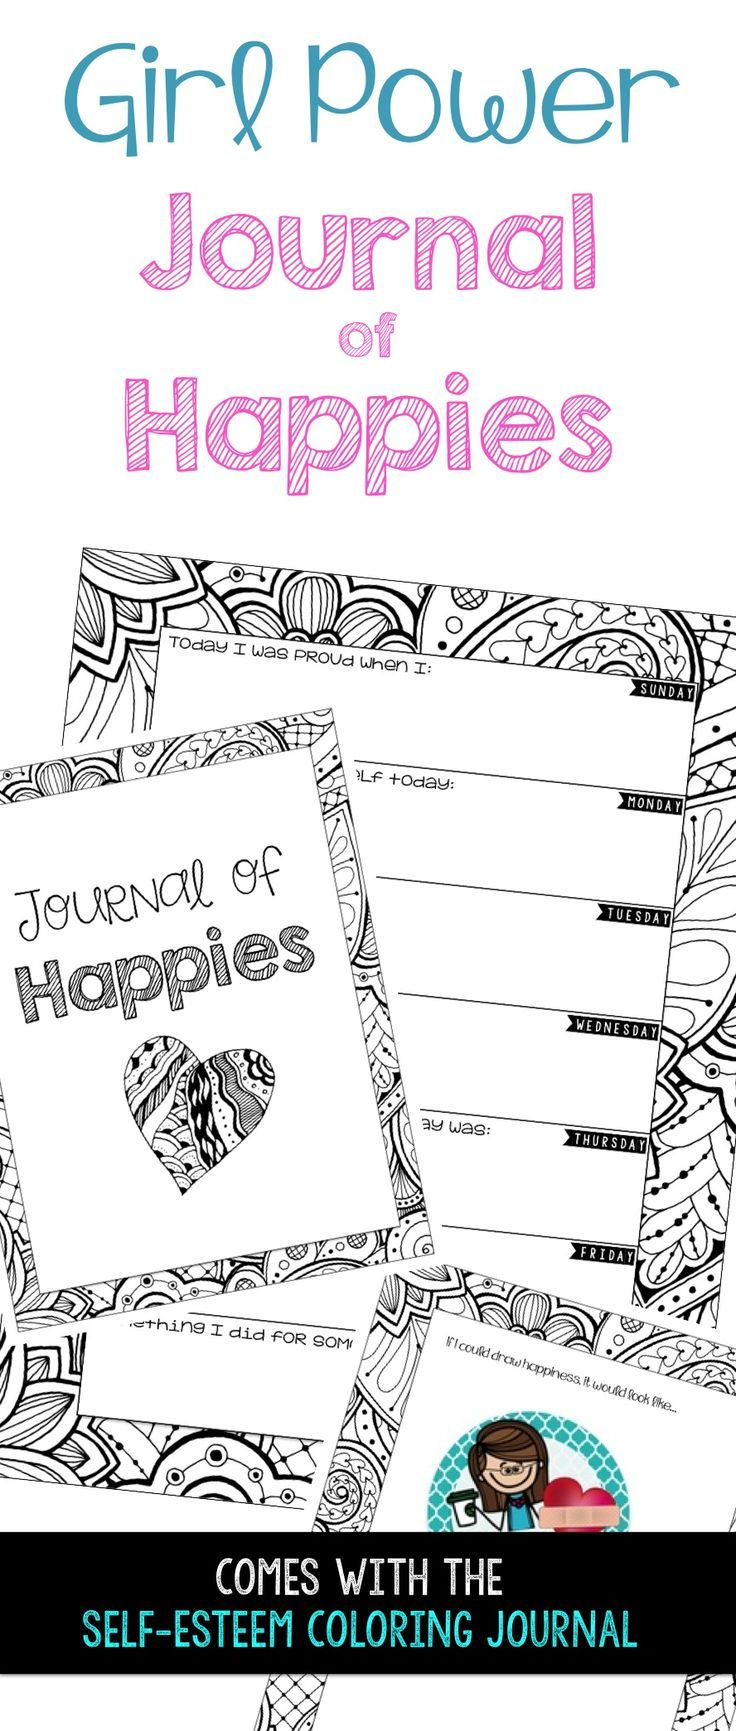 The coloring book of positivity - Self Esteem Coloring Journal Daily Calendarpositive Affirmationspositive Thoughtsschool Counselorthe Journalpromptscounselingcoloring Books Powerpoints